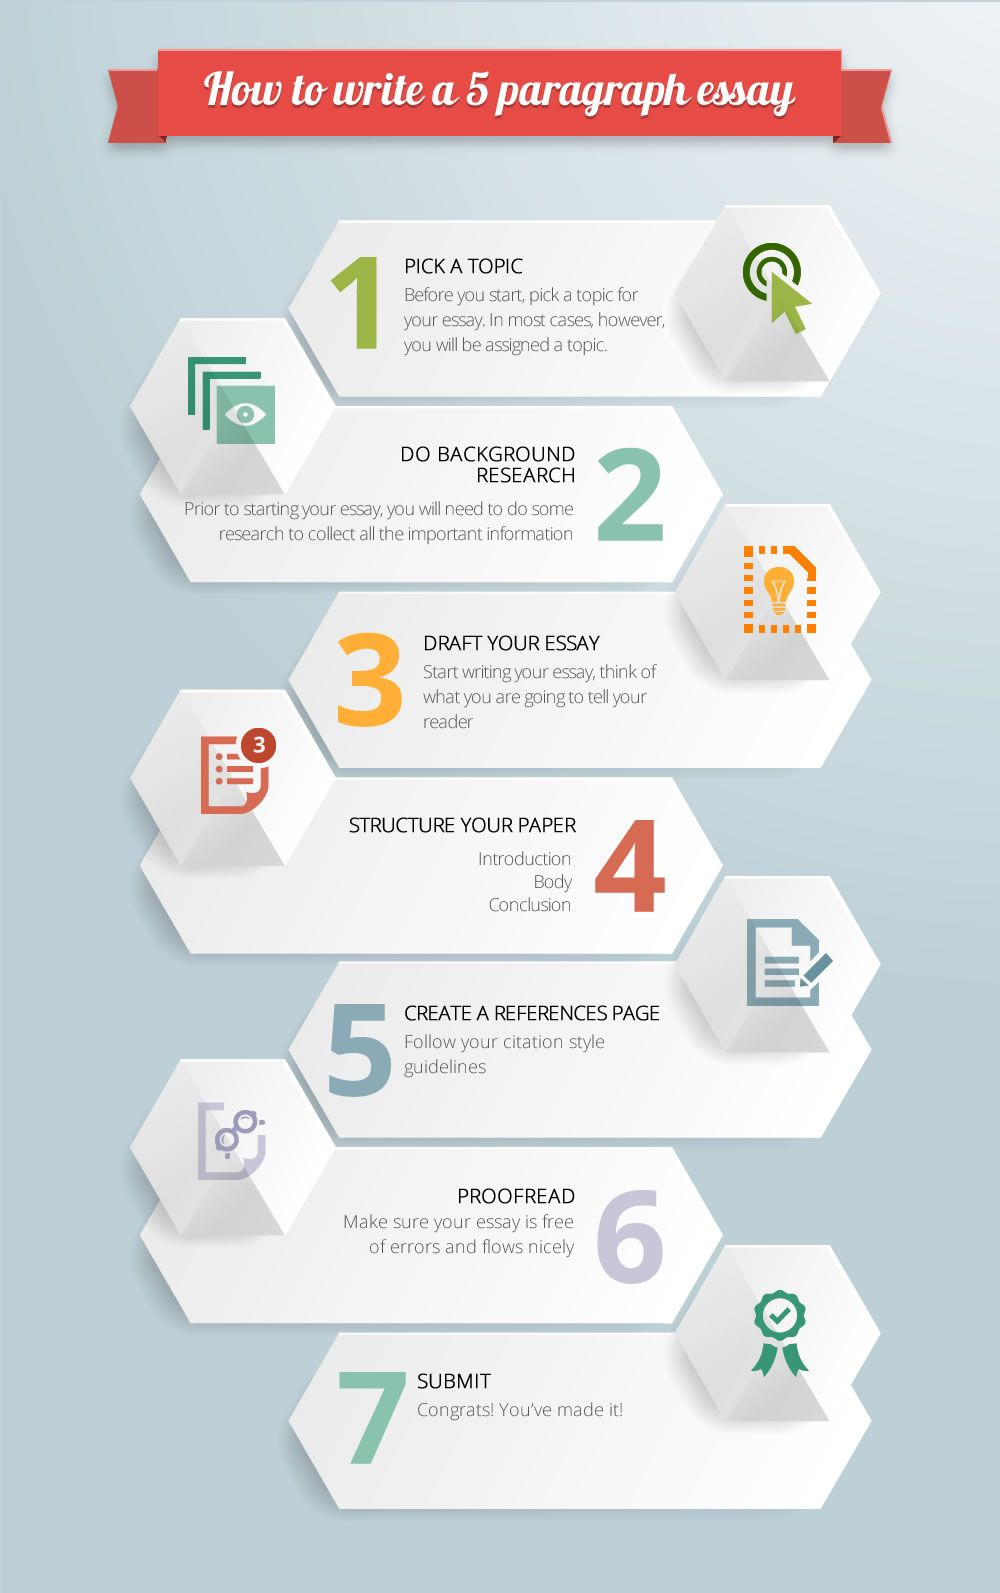 awesome infographic on five paragraph essay outline check it out awesome infographic on five paragraph essay outline check it out